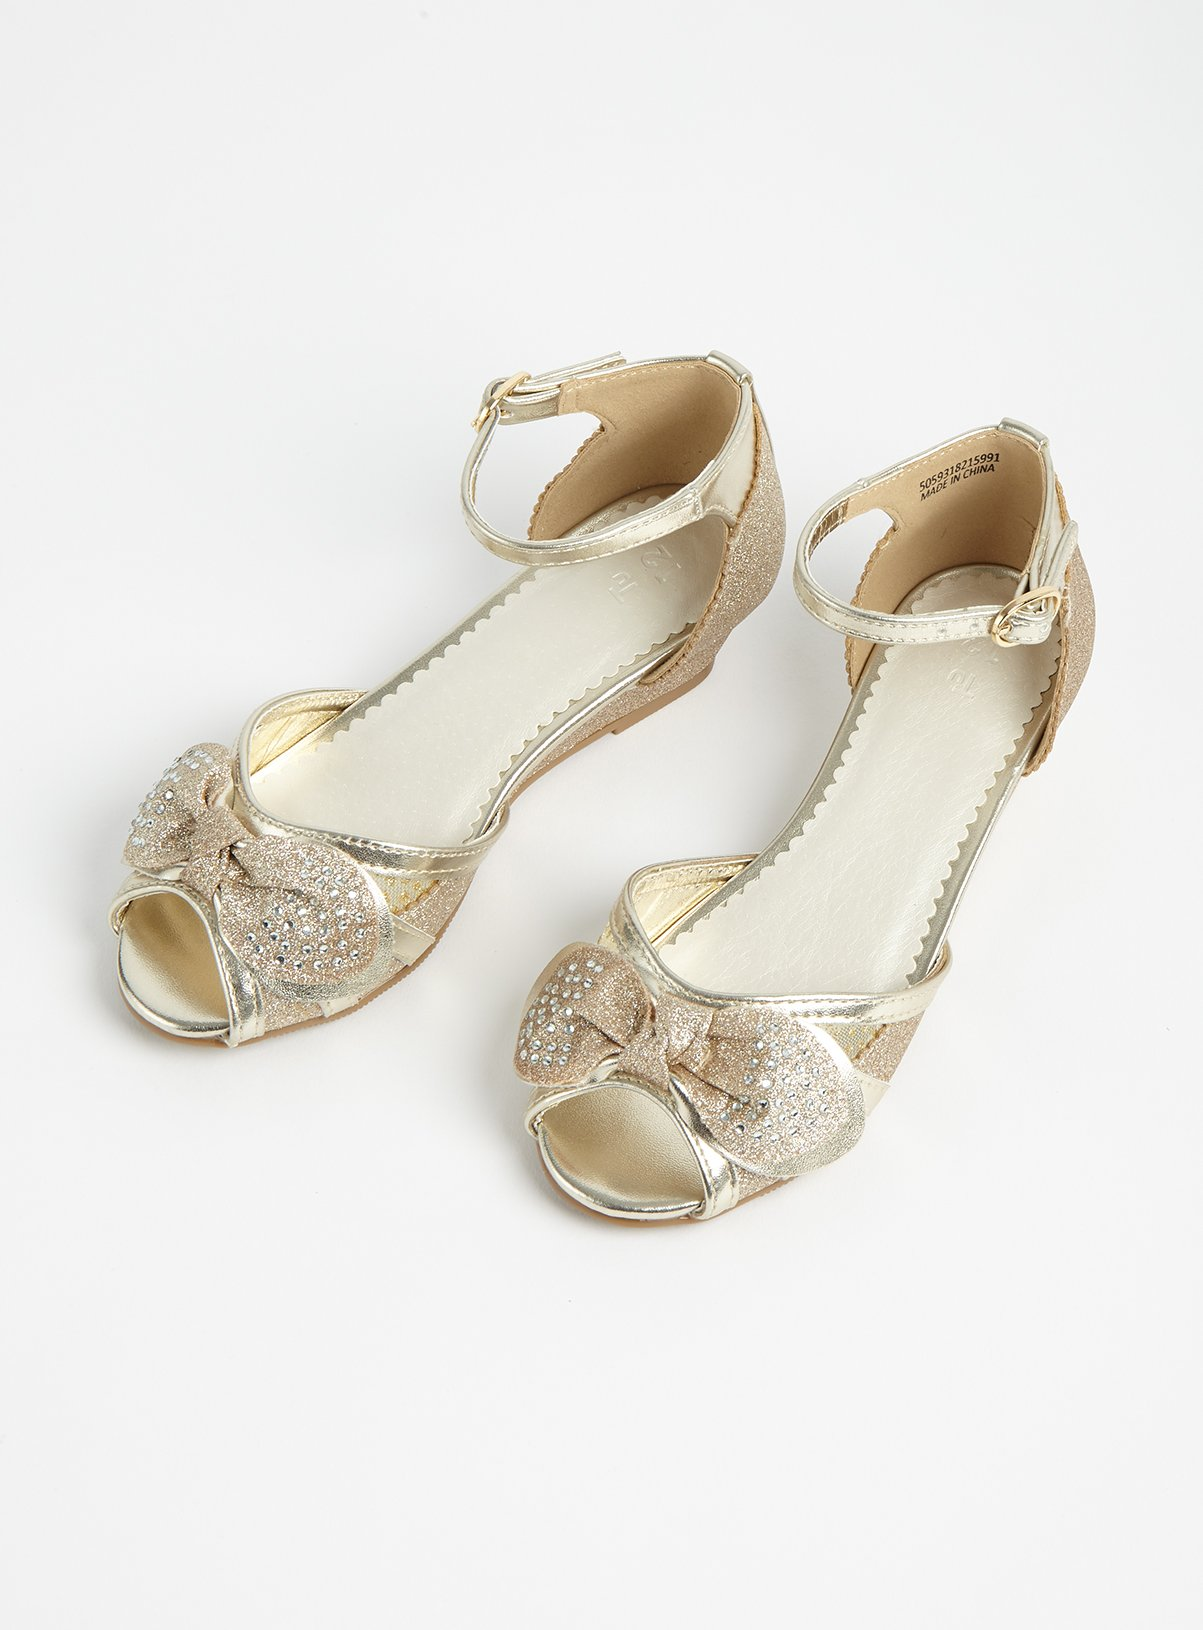 Gold Glitter Bow Wedges - 4